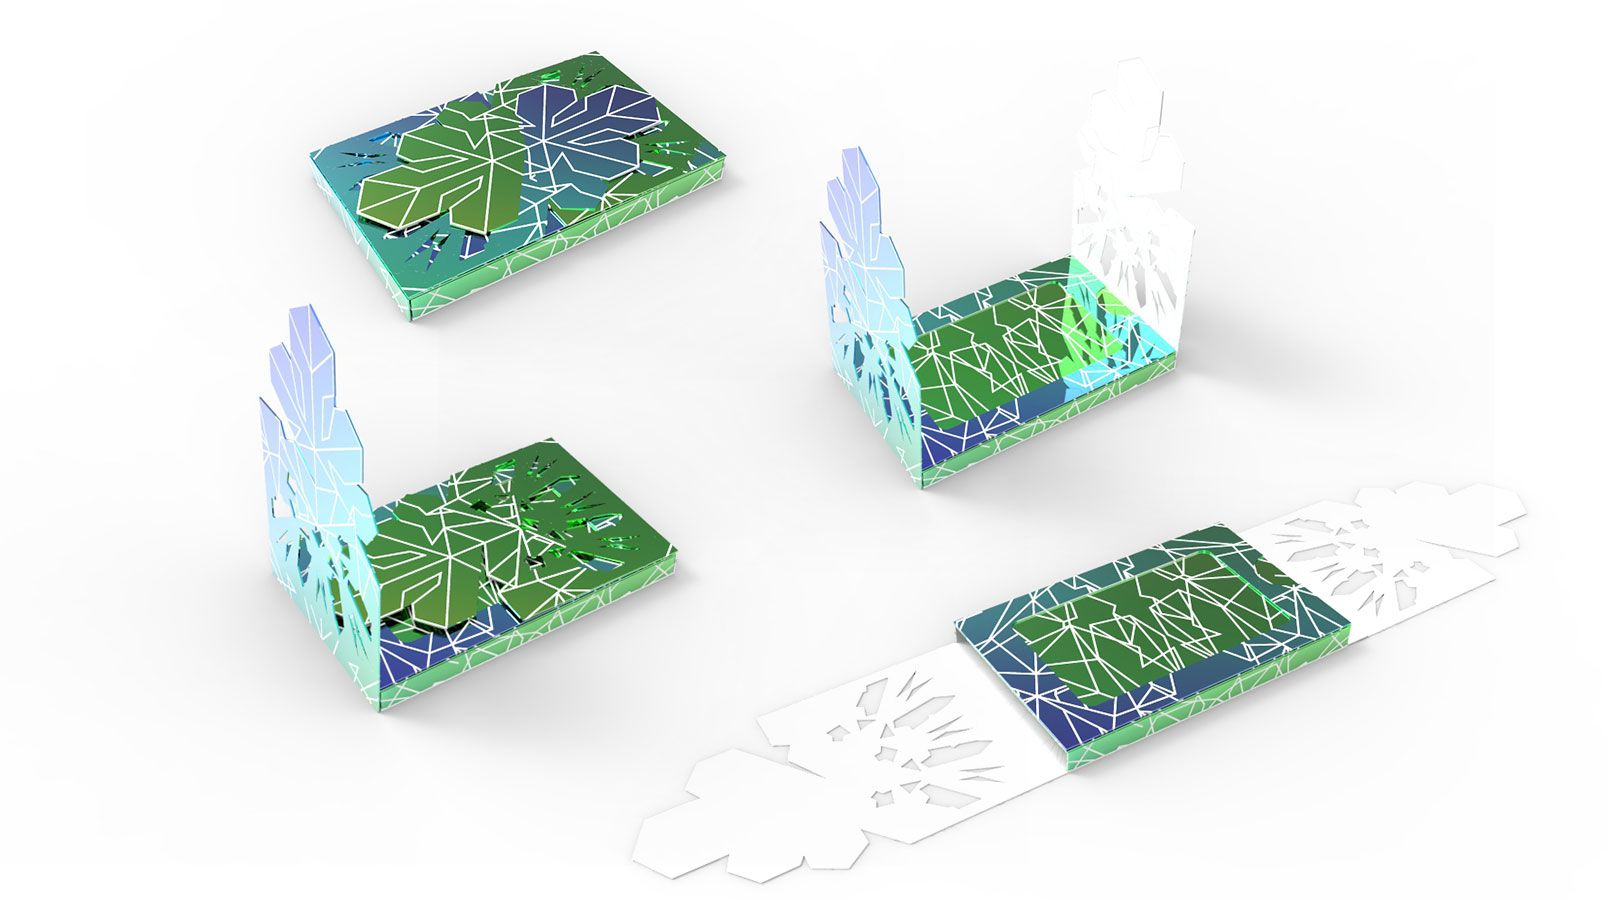 Design process for Sephora's holographic snowflake holiday retail packaging program.